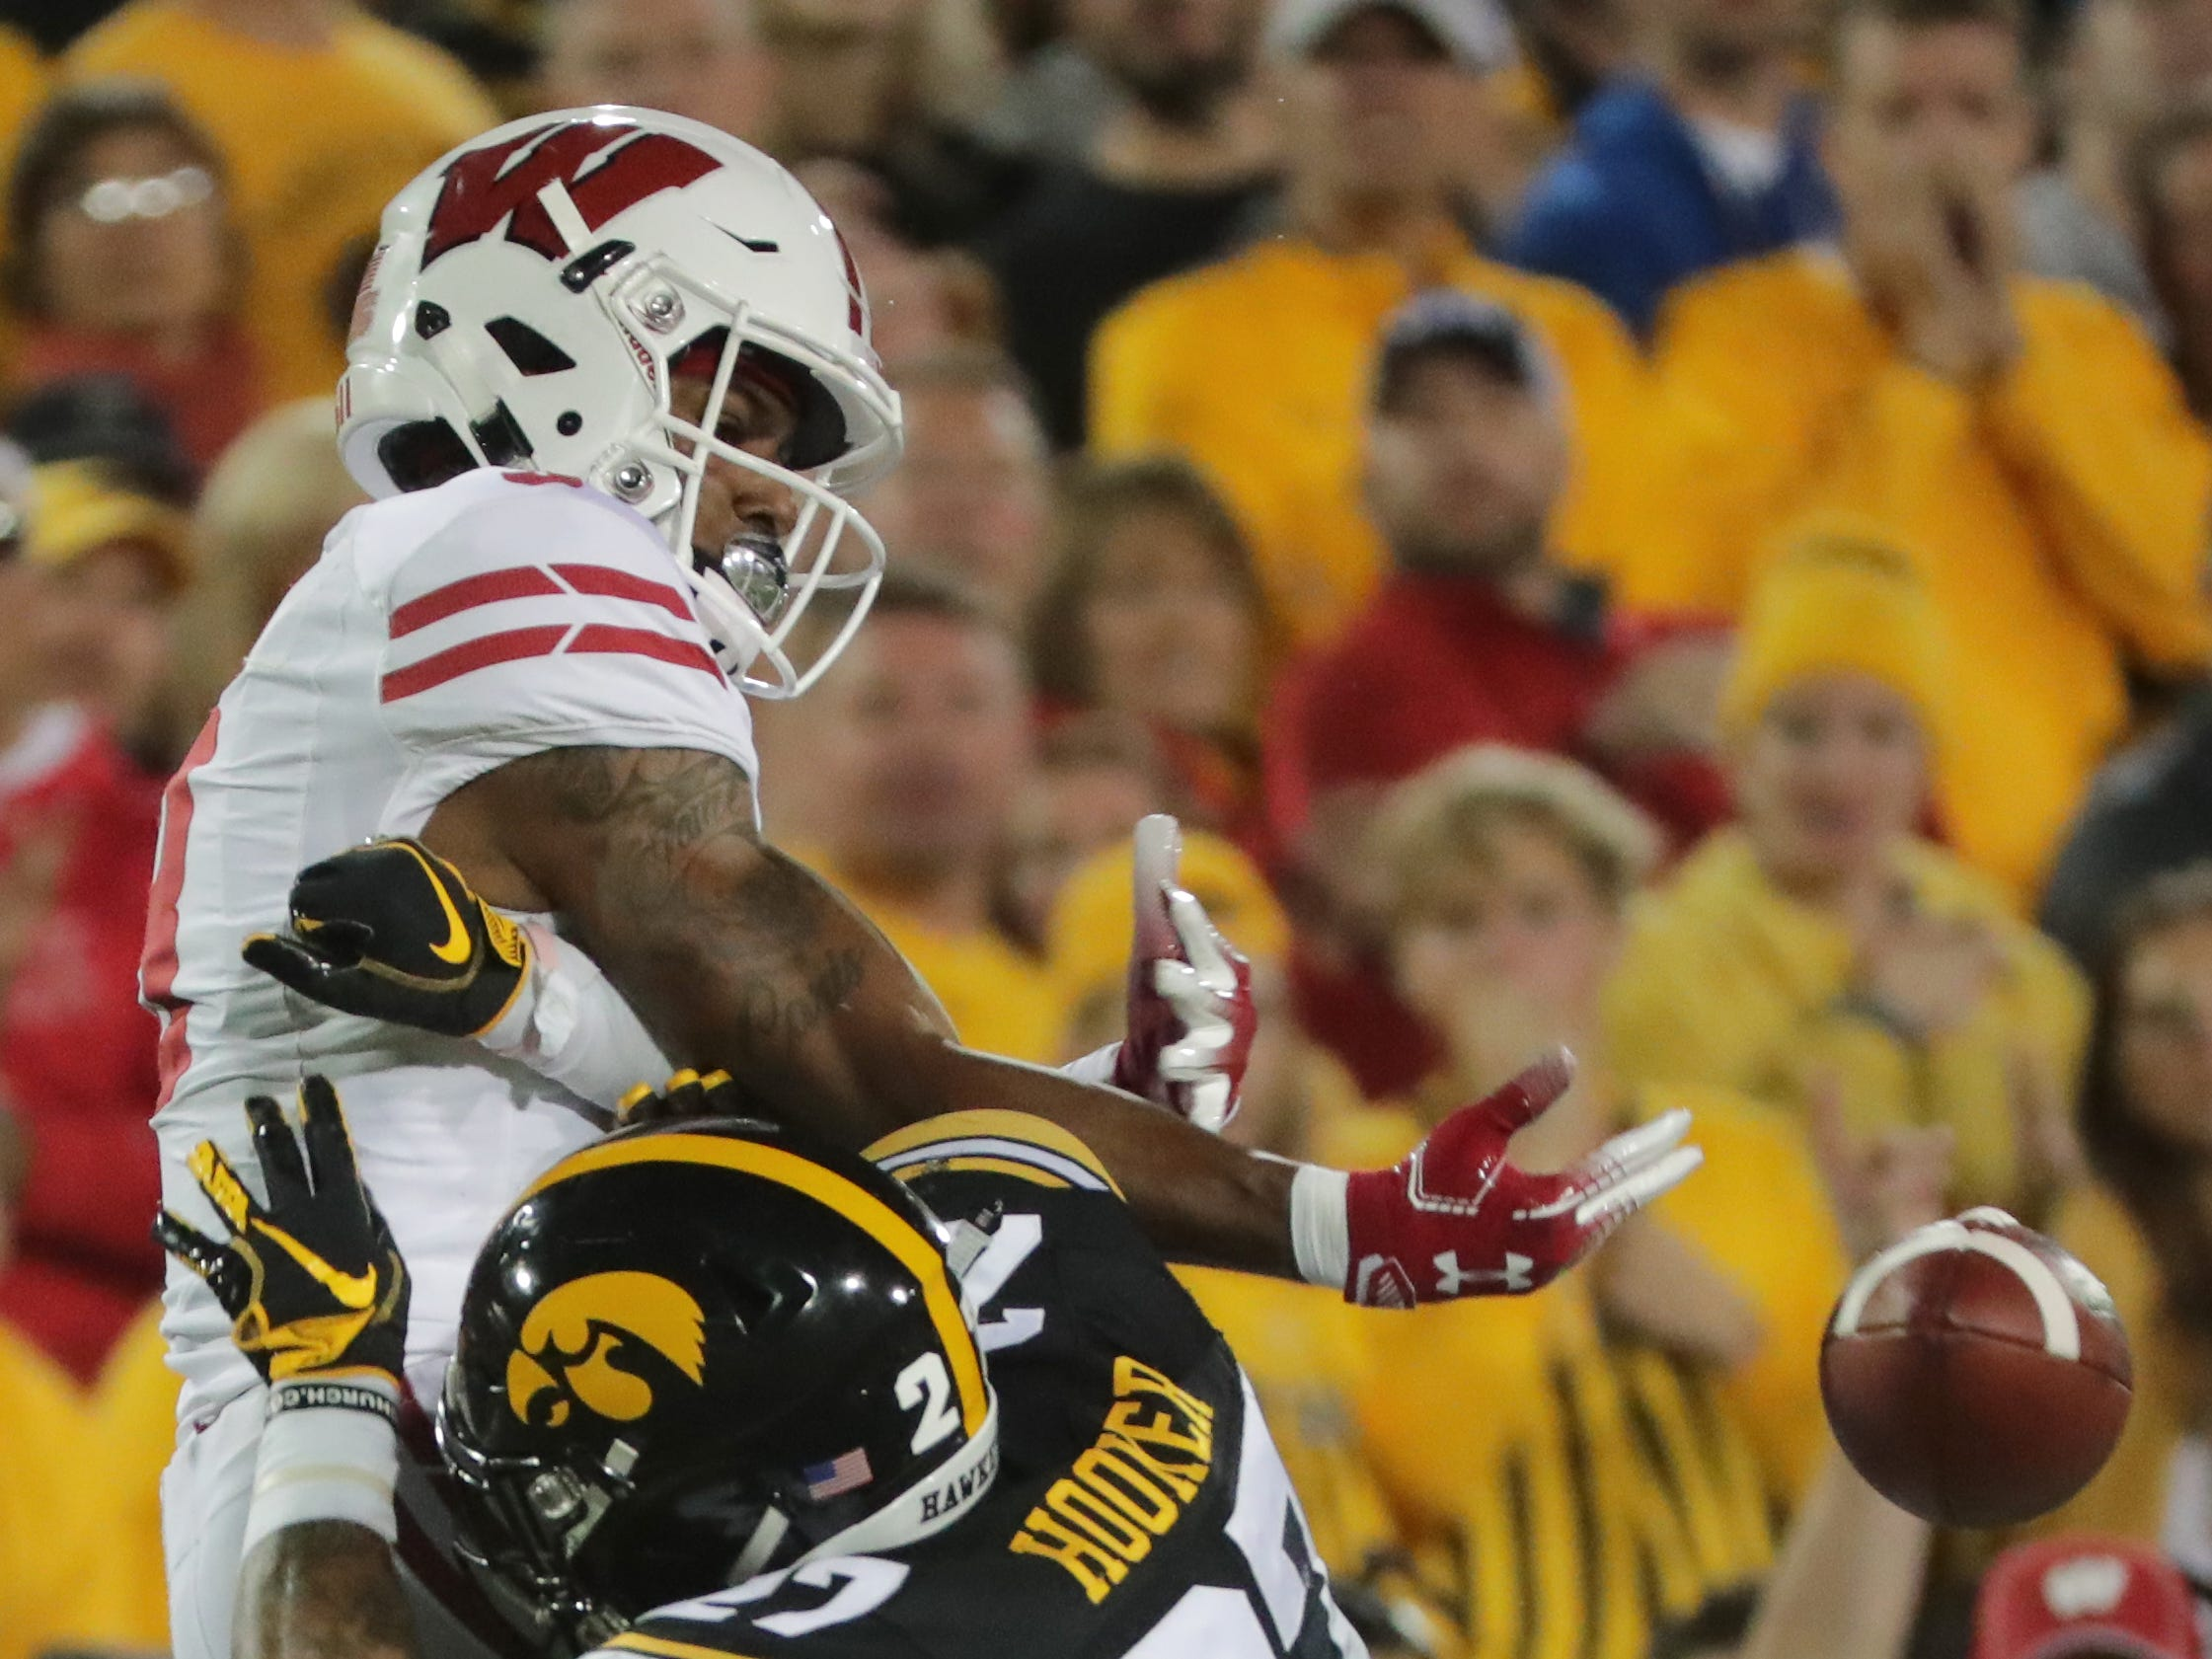 Iowa defensive back Amani Hooker breaks up a pass intended for Wisconsin wide receiver Kendric Pryor.